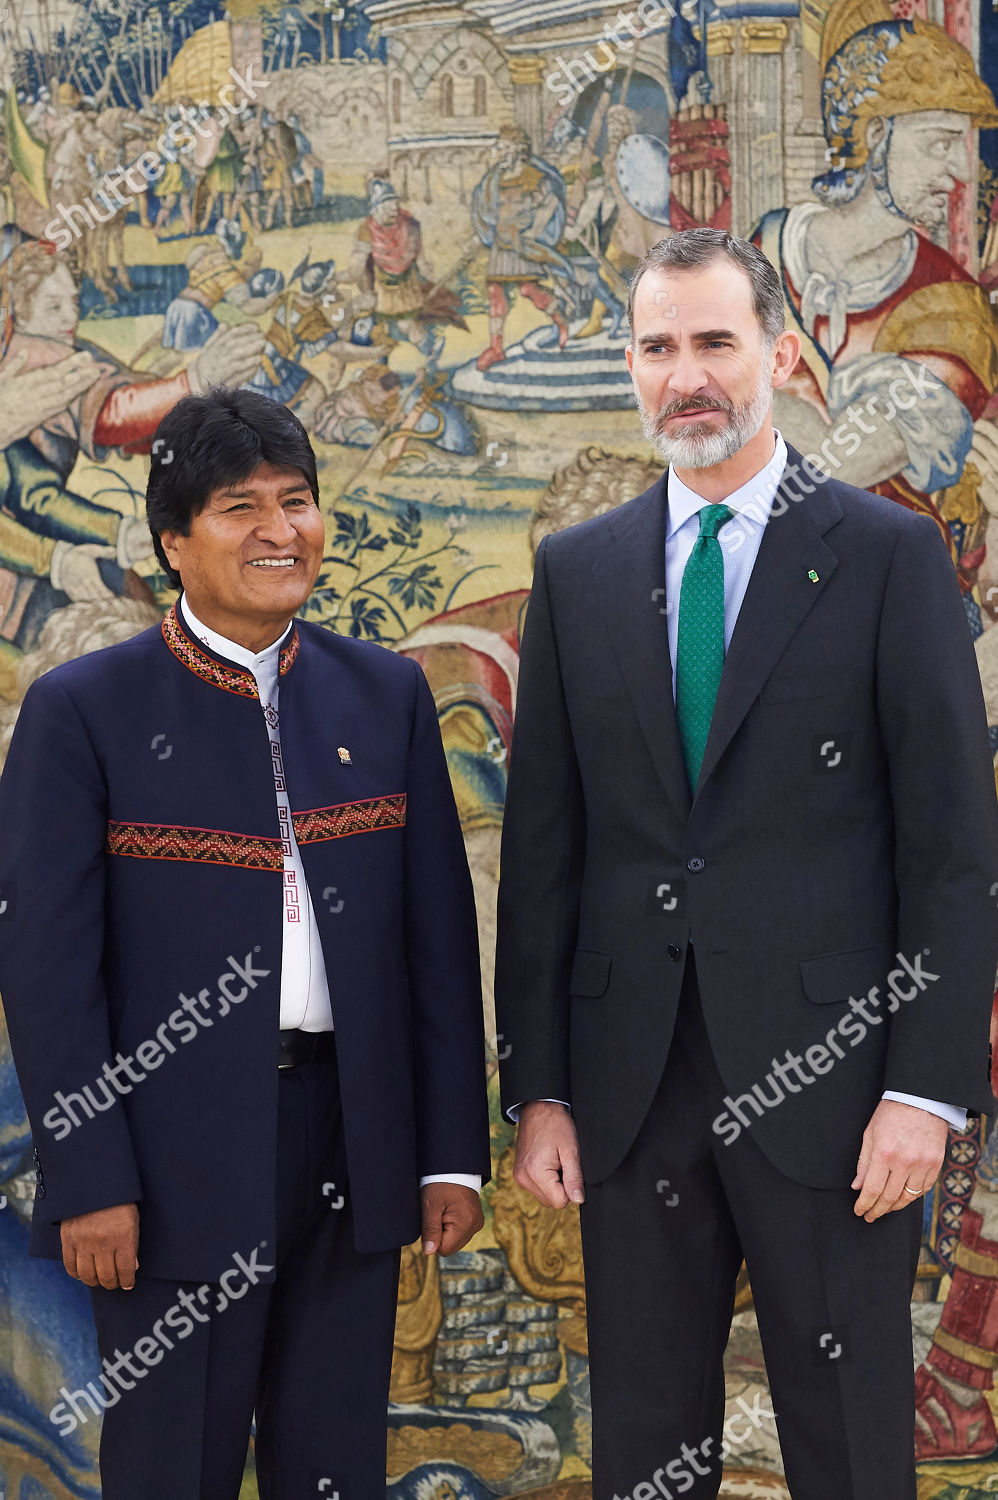 ¿Cuánto mide Evo Morales? - Altura - Real height President-of-bolivia-evo-morales-visit-to-spain-shutterstock-editorial-9465489g